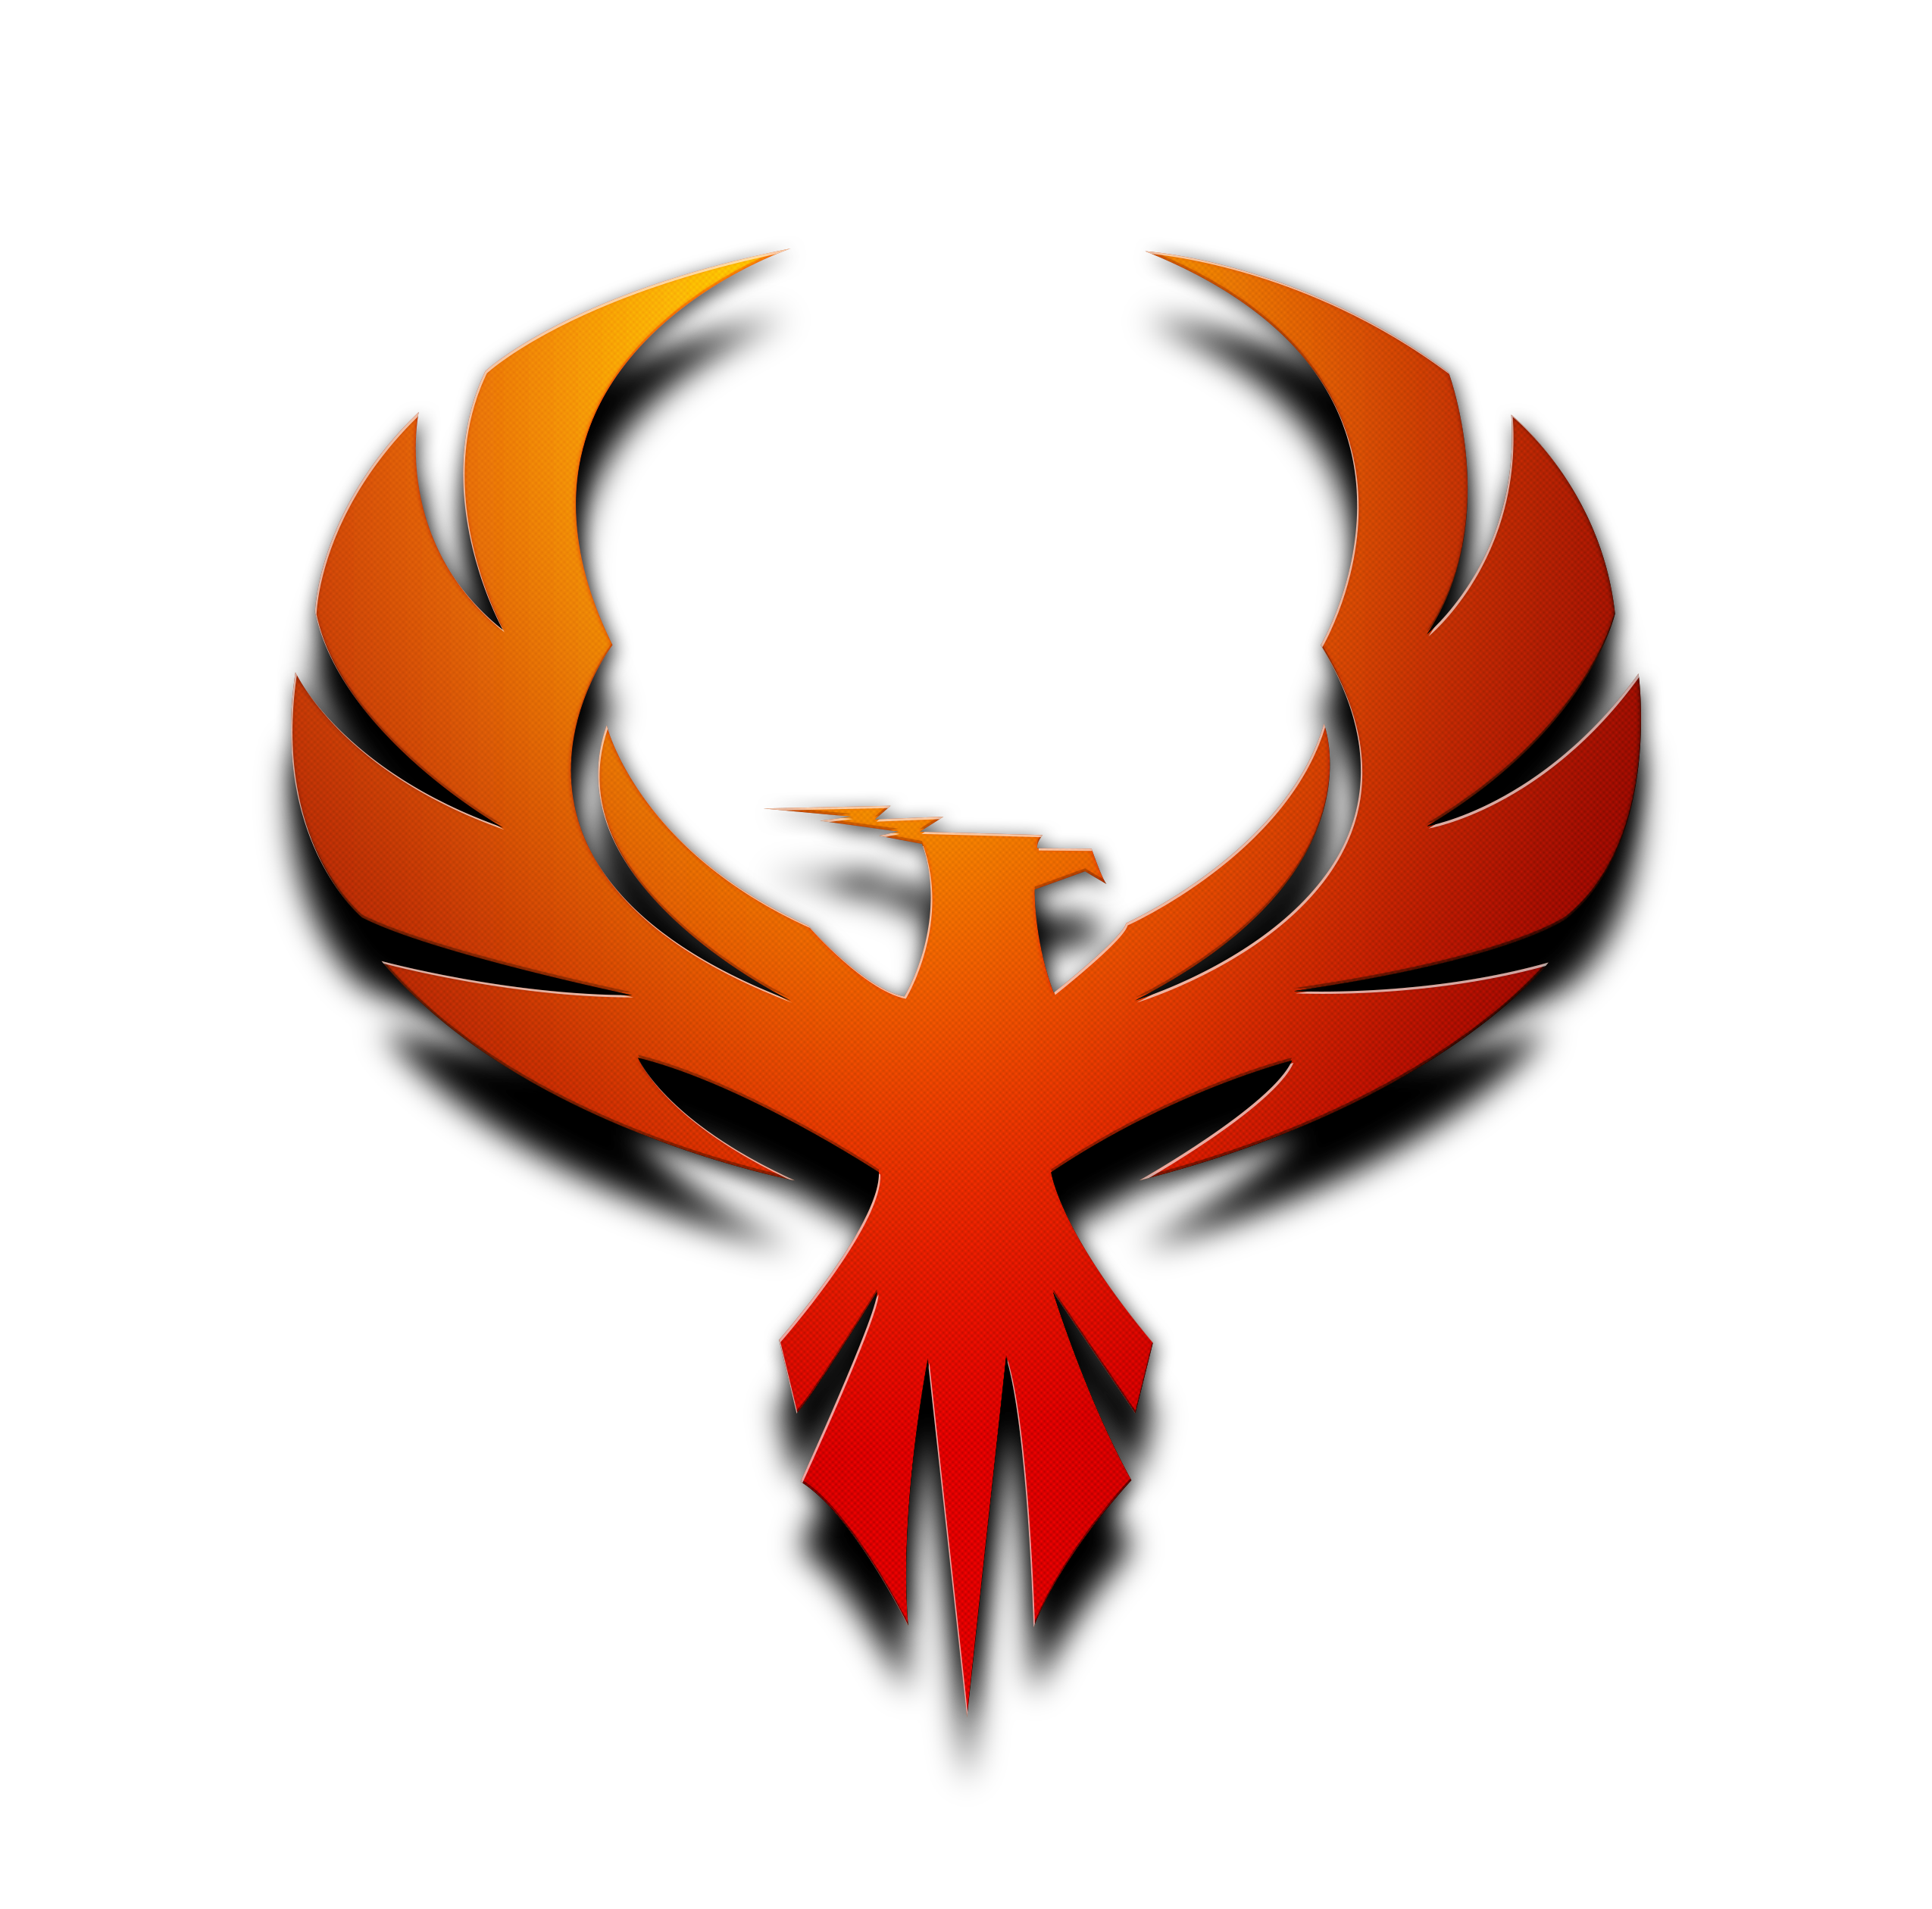 Phoenix-Logo.png (2550×2520) | Ideas | Pinterest